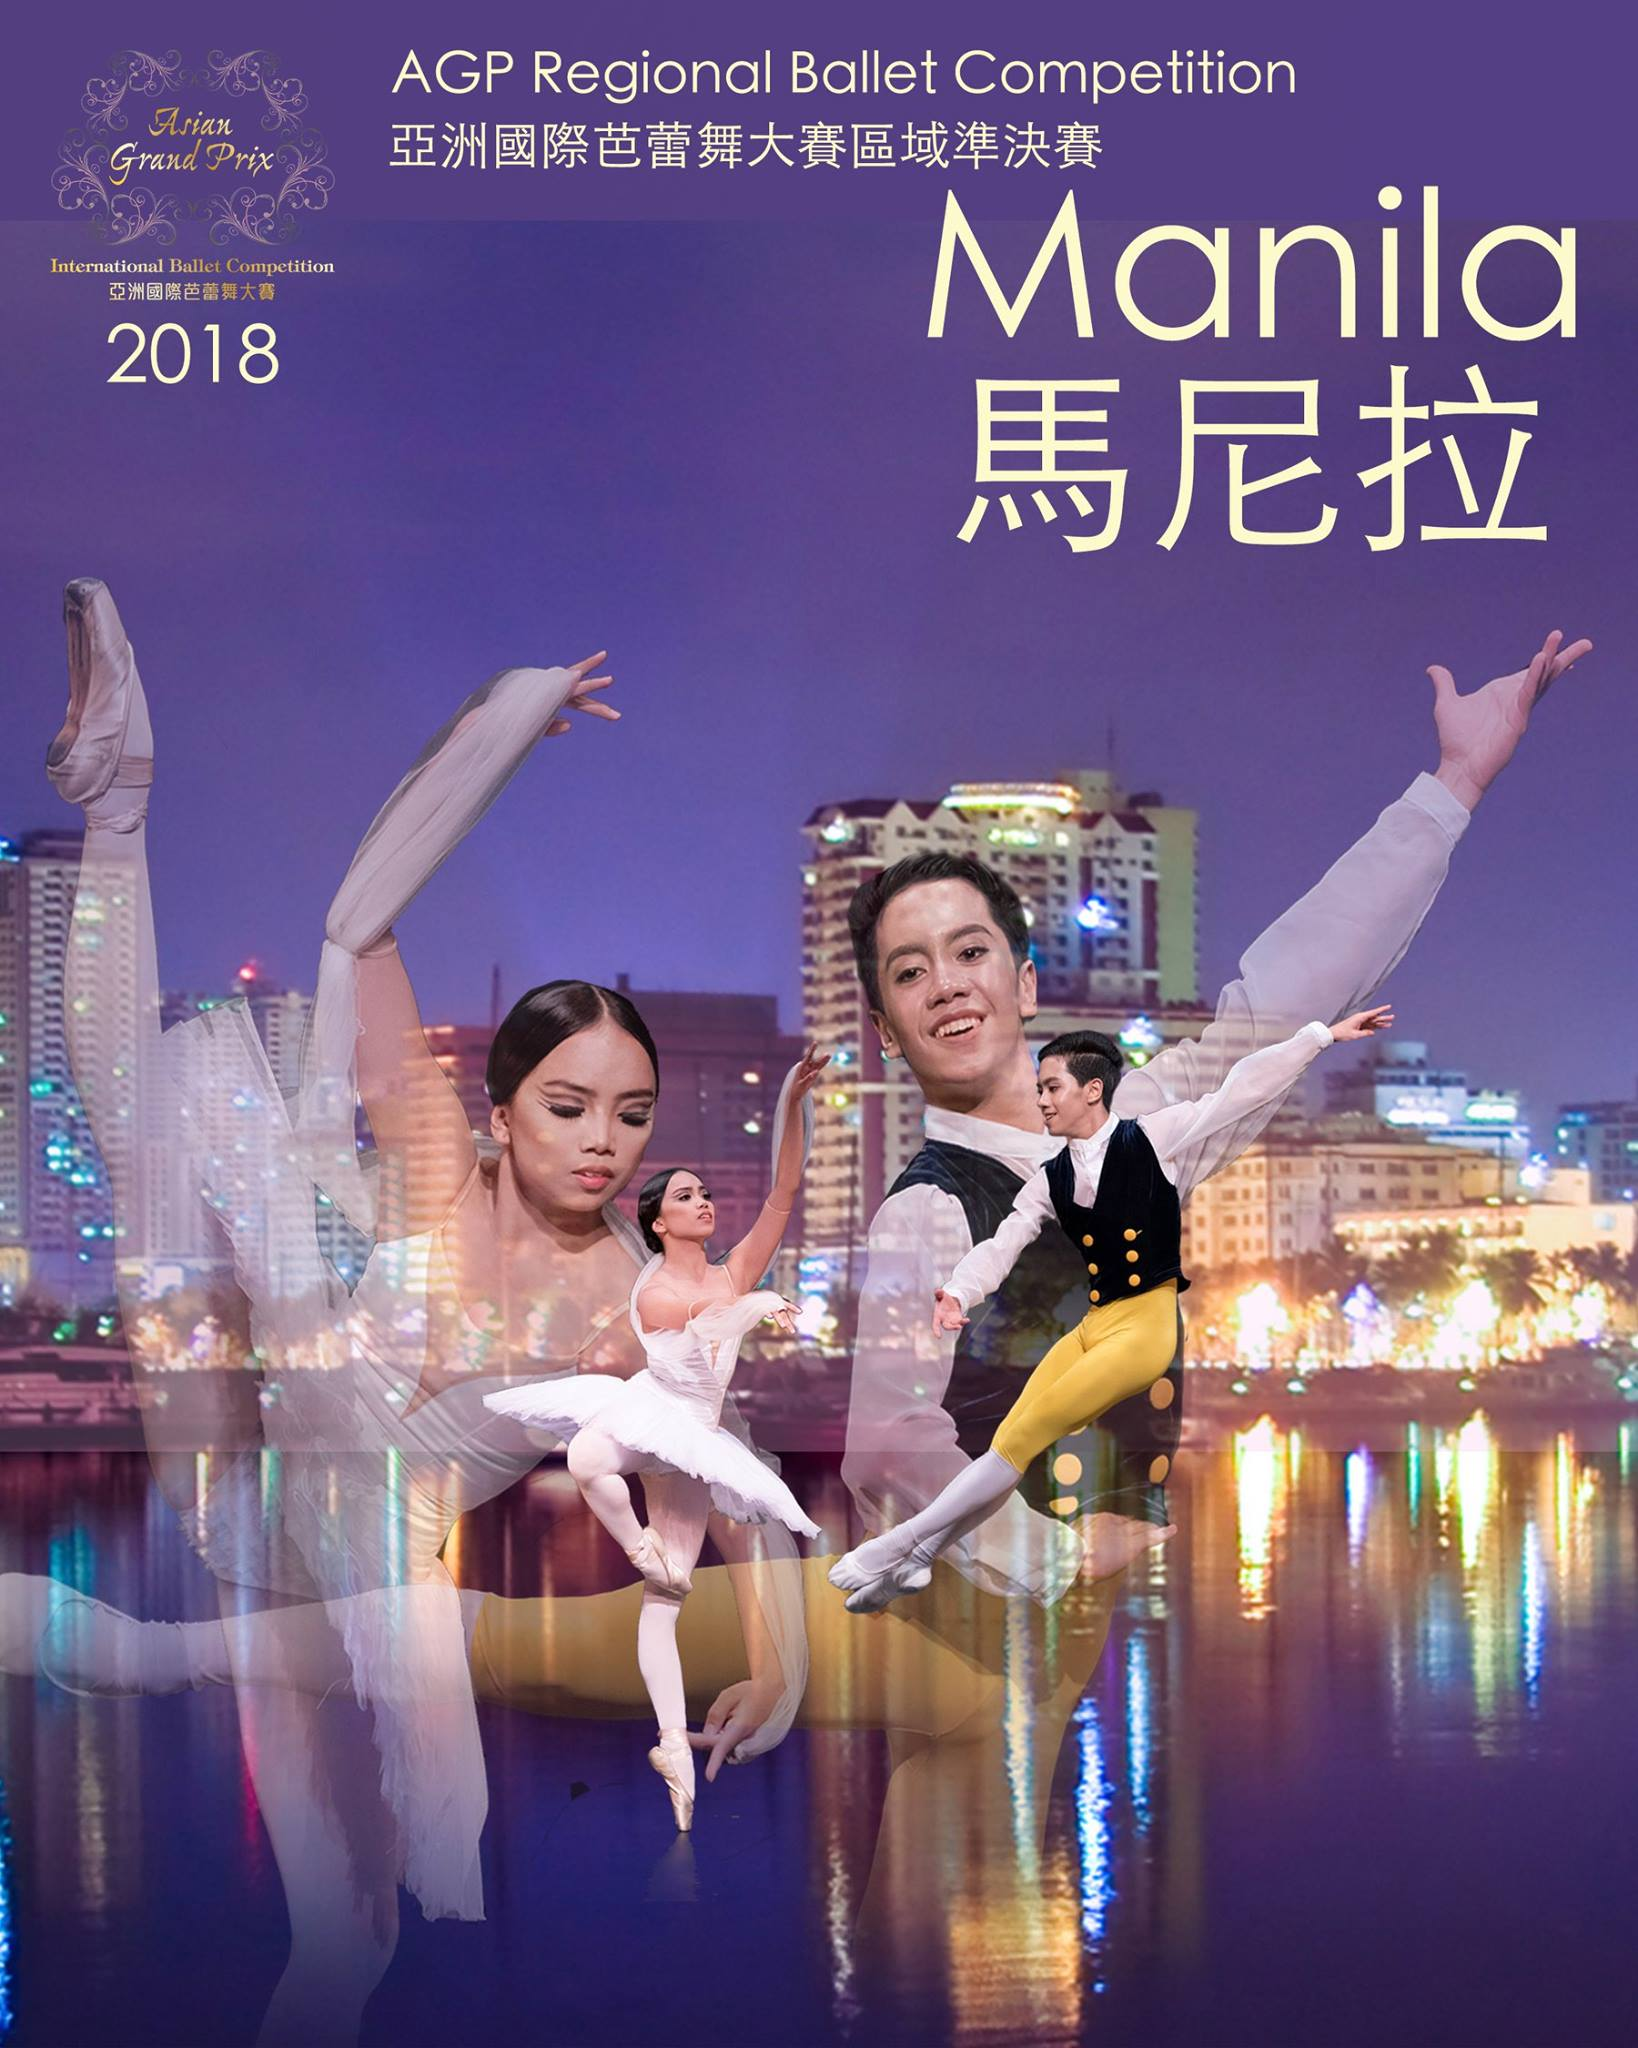 Qualifiers in the Asian Grand Prix Regional Competition in Manila will get to compete in the finals to be held in Hong Kong in August. Photo courtesy of Asian Grand Prix